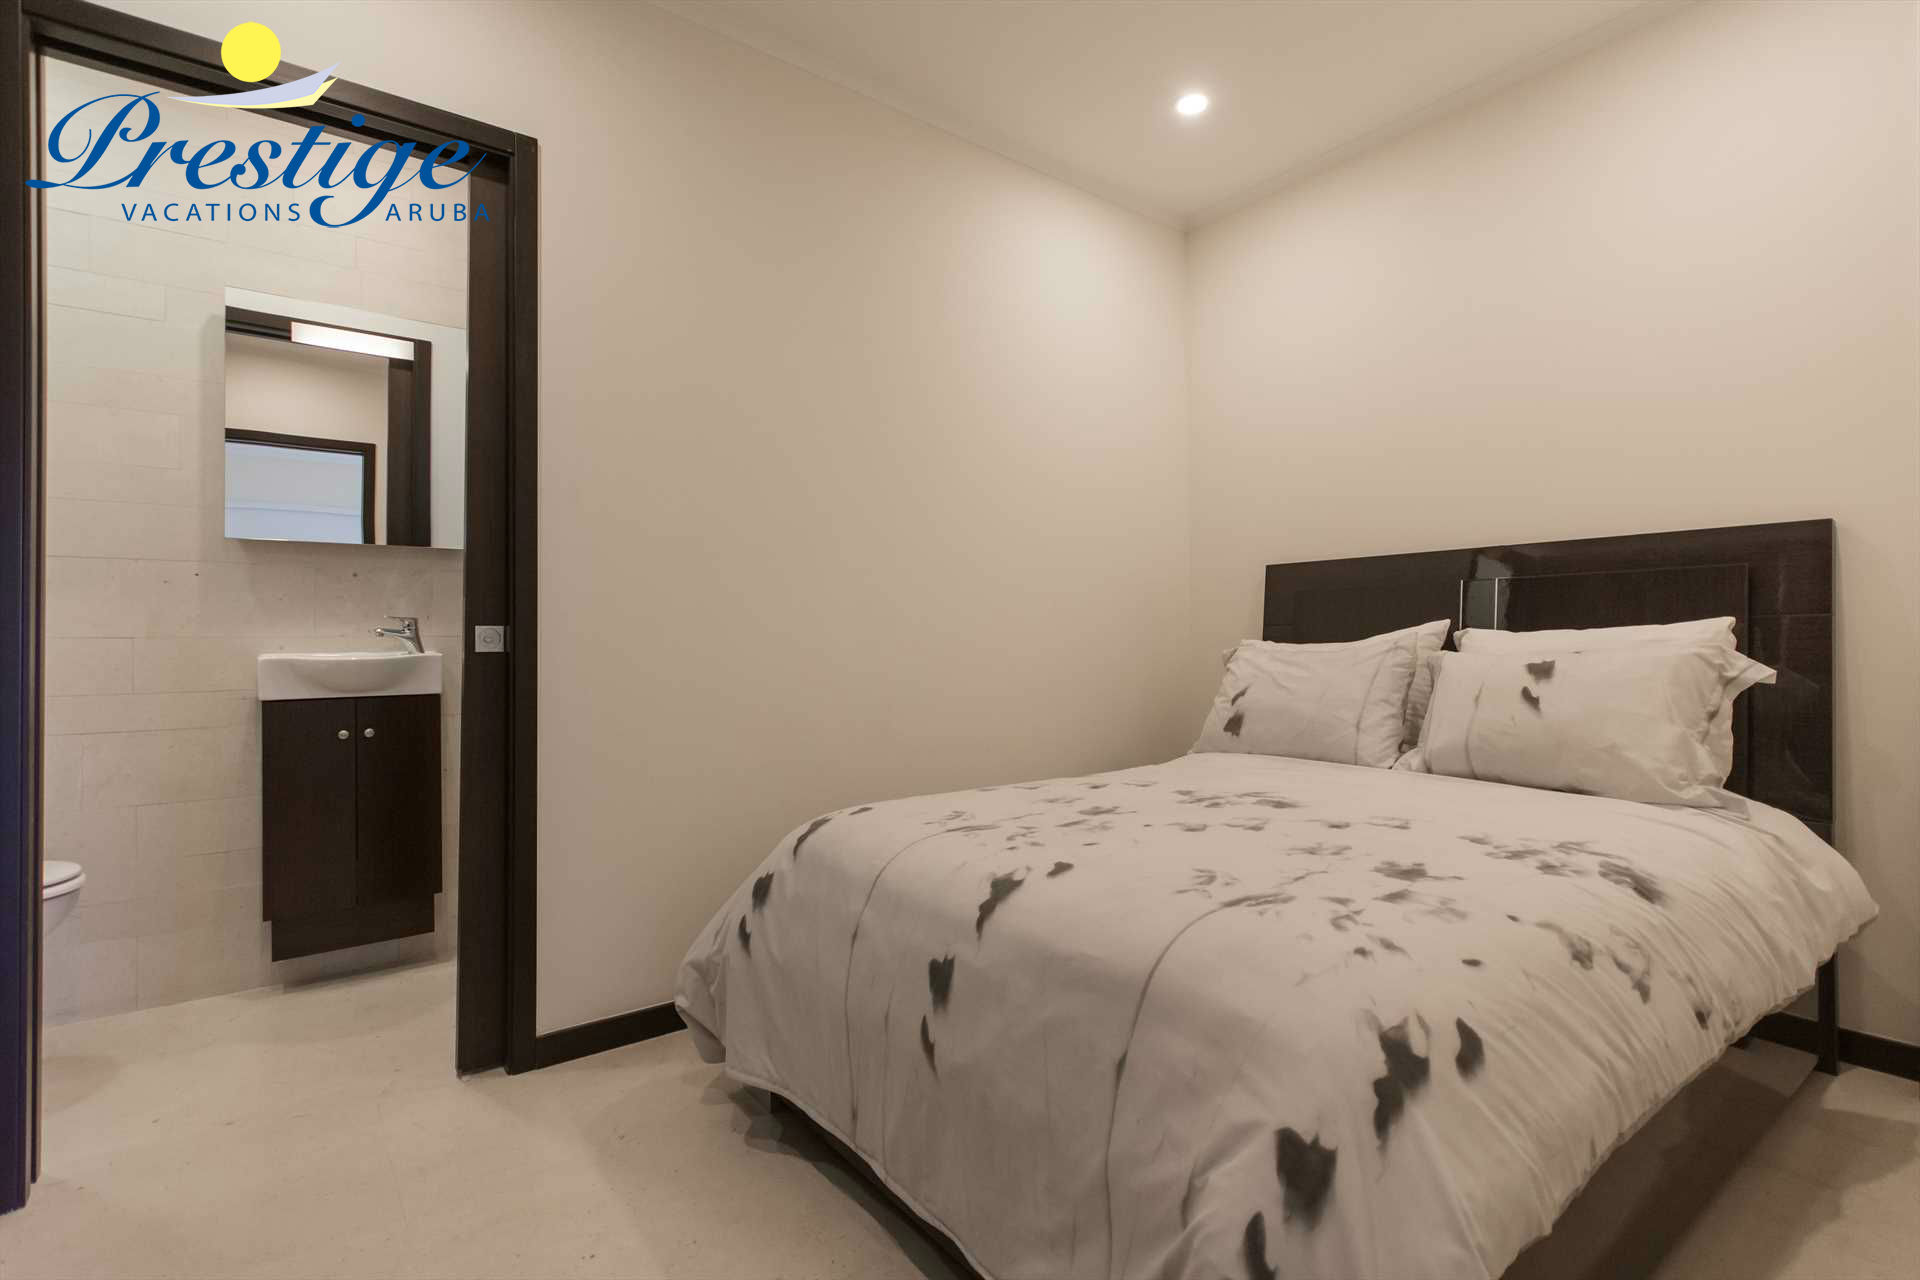 An additional separate room which has a double-size bed and an en-suite bathroom